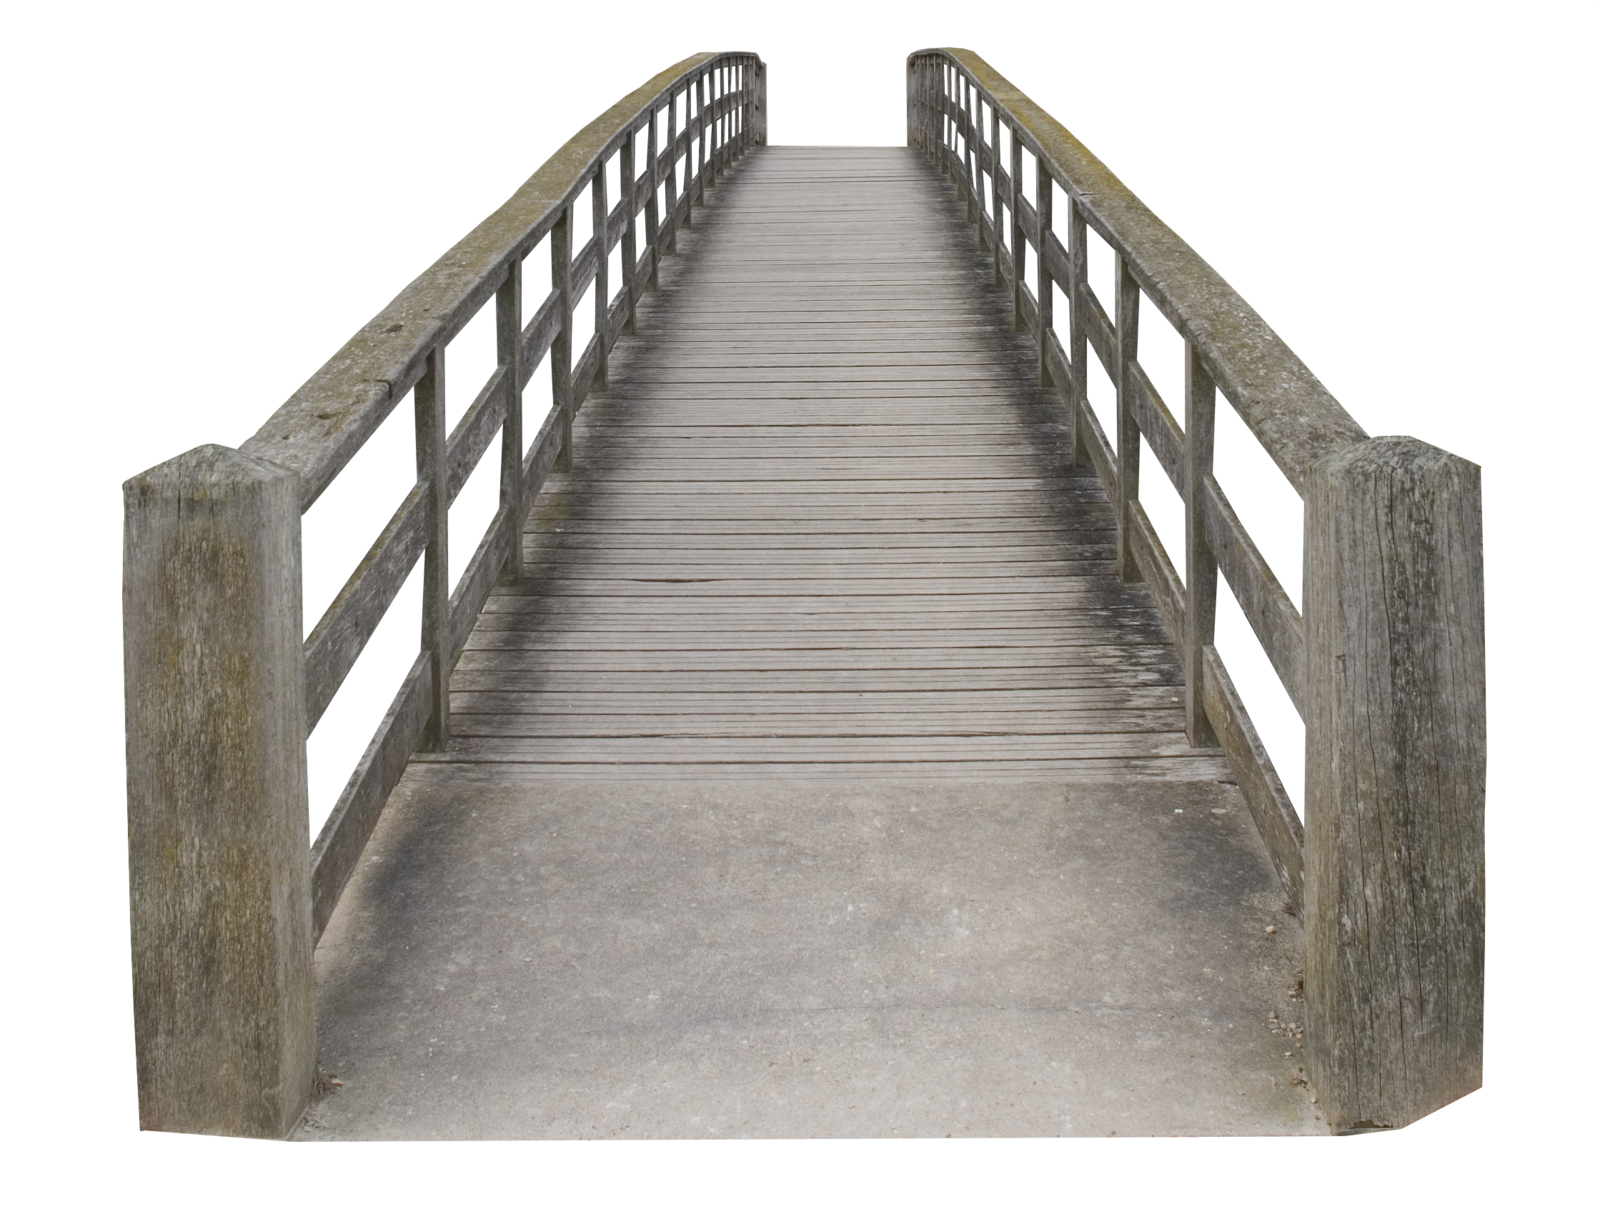 bridge, pin for outside photoshop design #23193